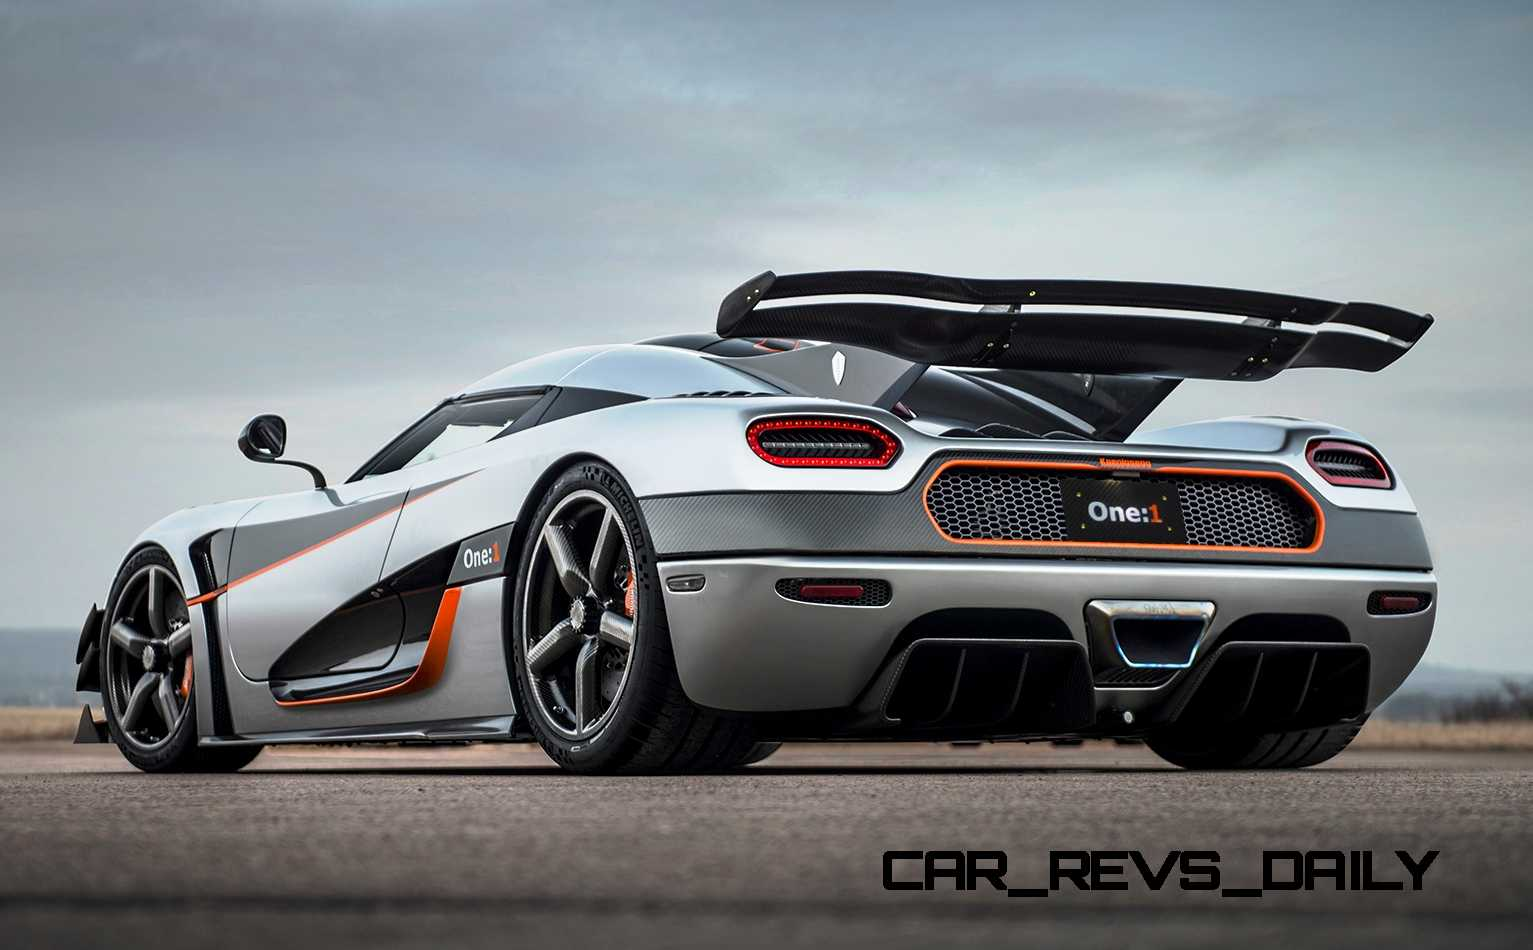 Turbo Back Exhaust >> 2015 Koenigsegg Agera One:1 Back in USA Via Manhattan ...